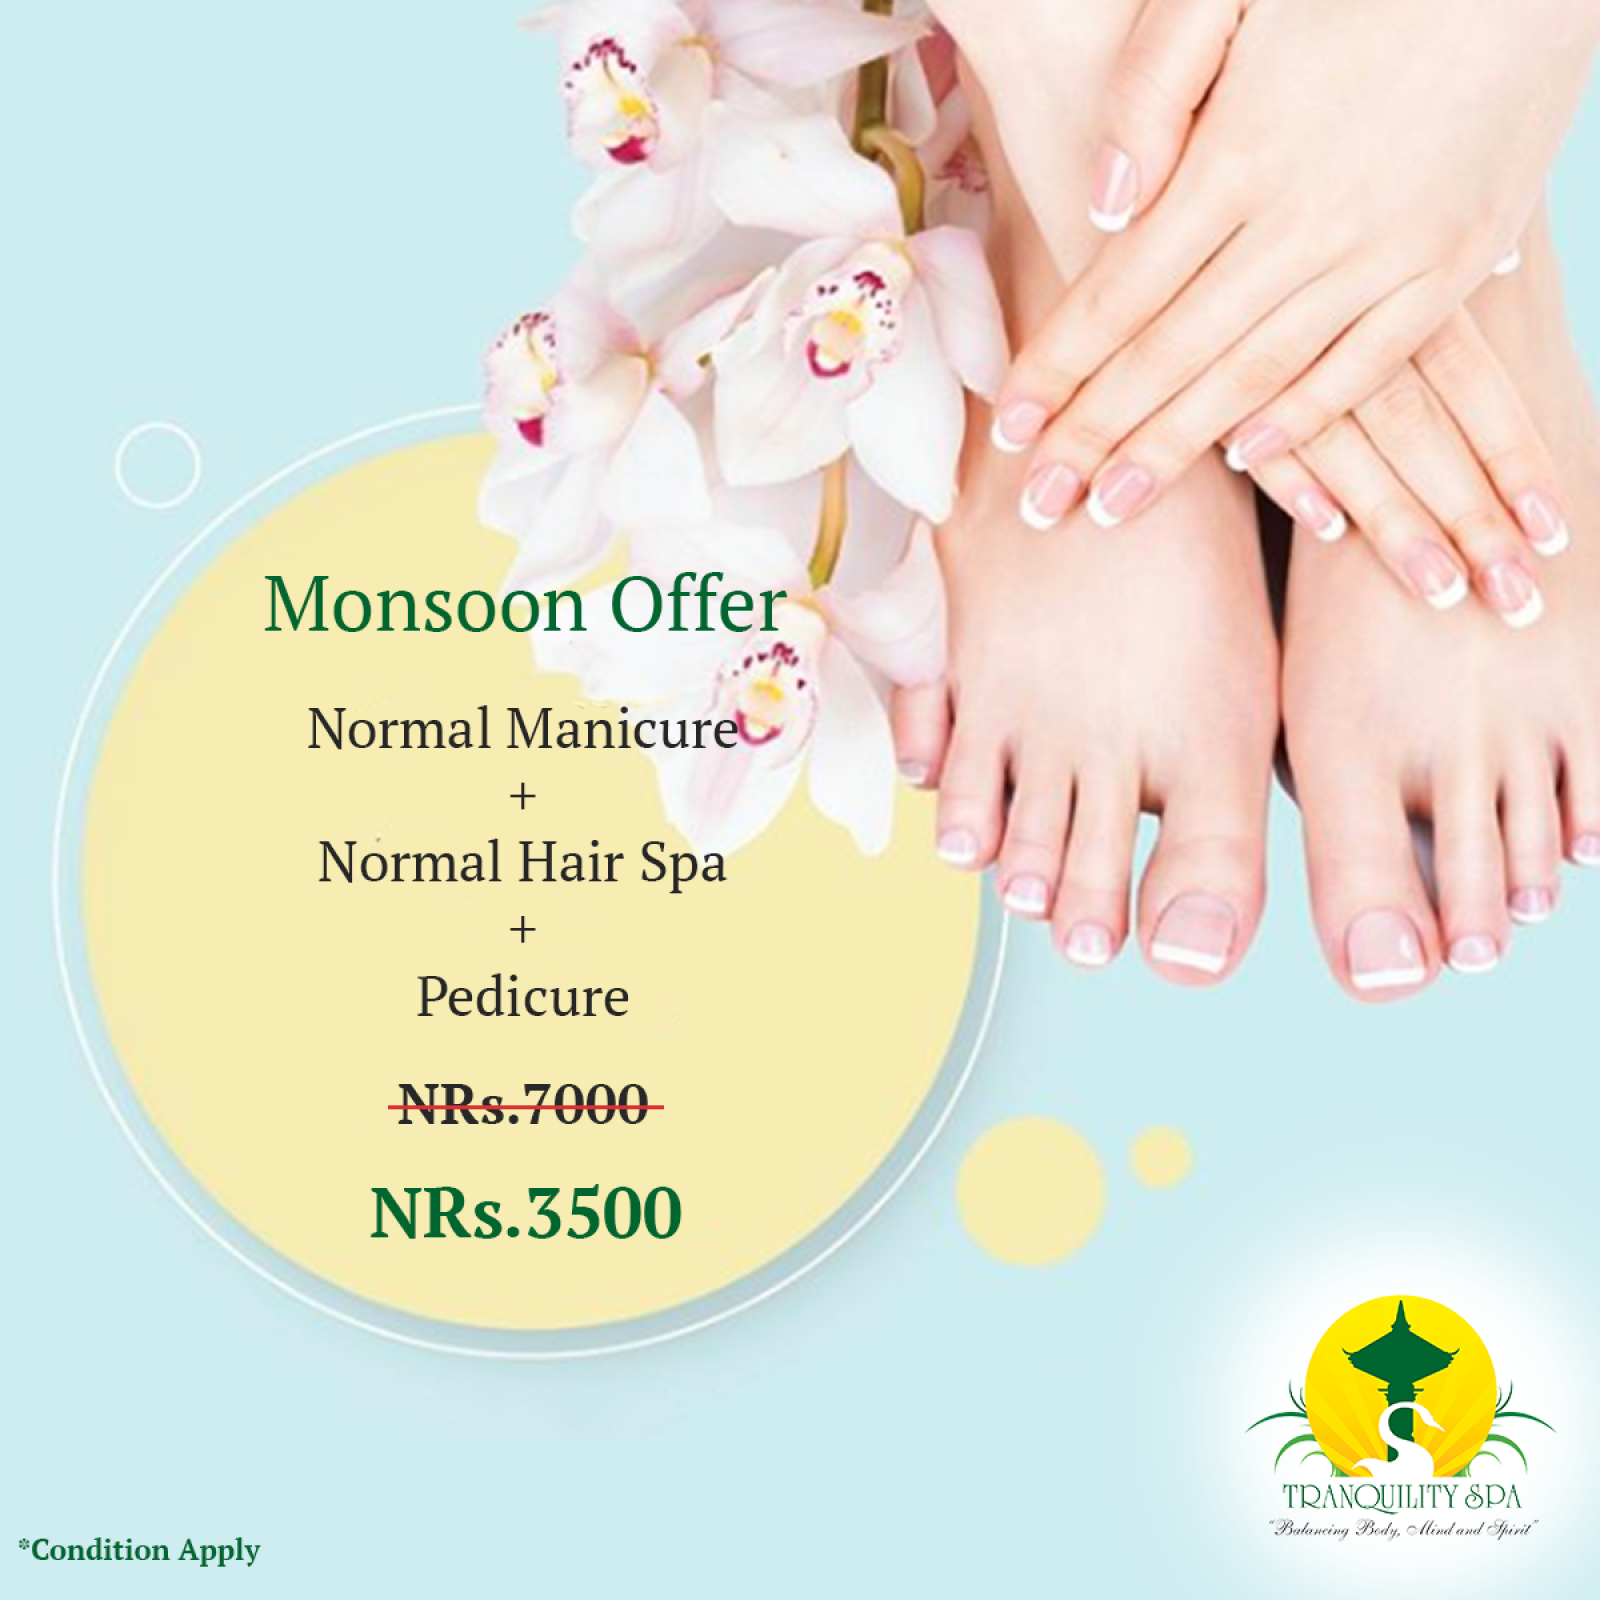 (Normal manicure + Pedicure + Normal Hair Spa) only @Rs 3500 till 17th of September